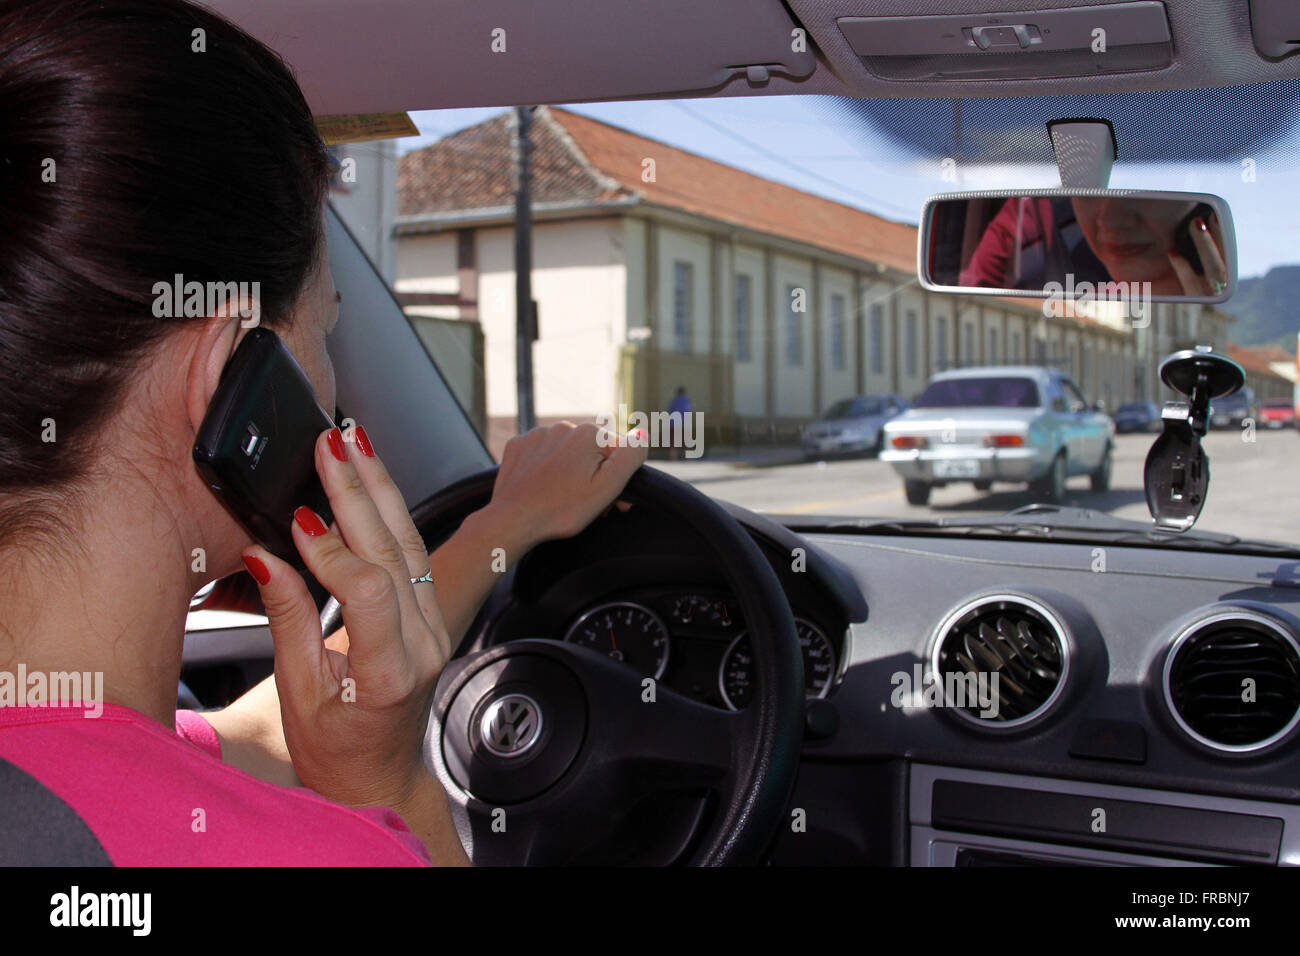 Driver using mobile phone while driving automobile - Stock Image